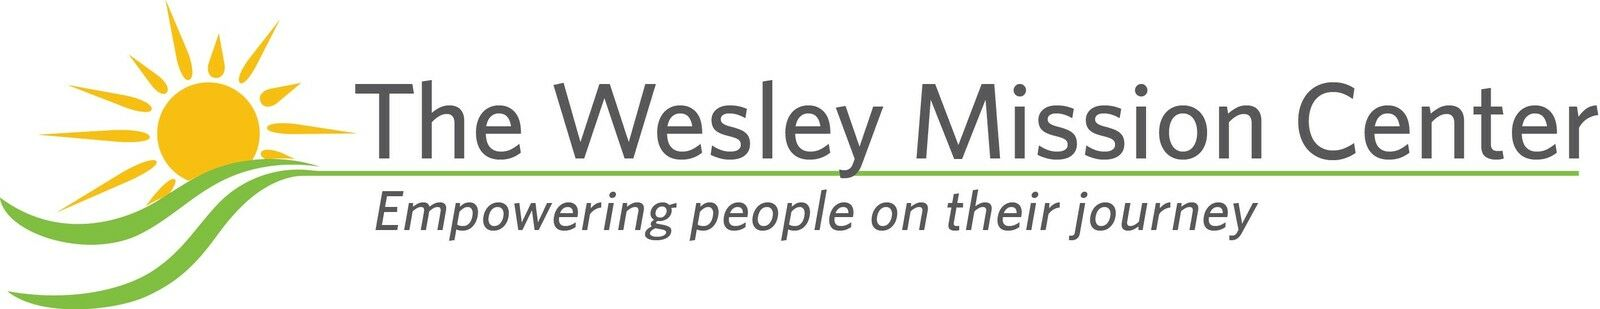 Wesley Mission Center